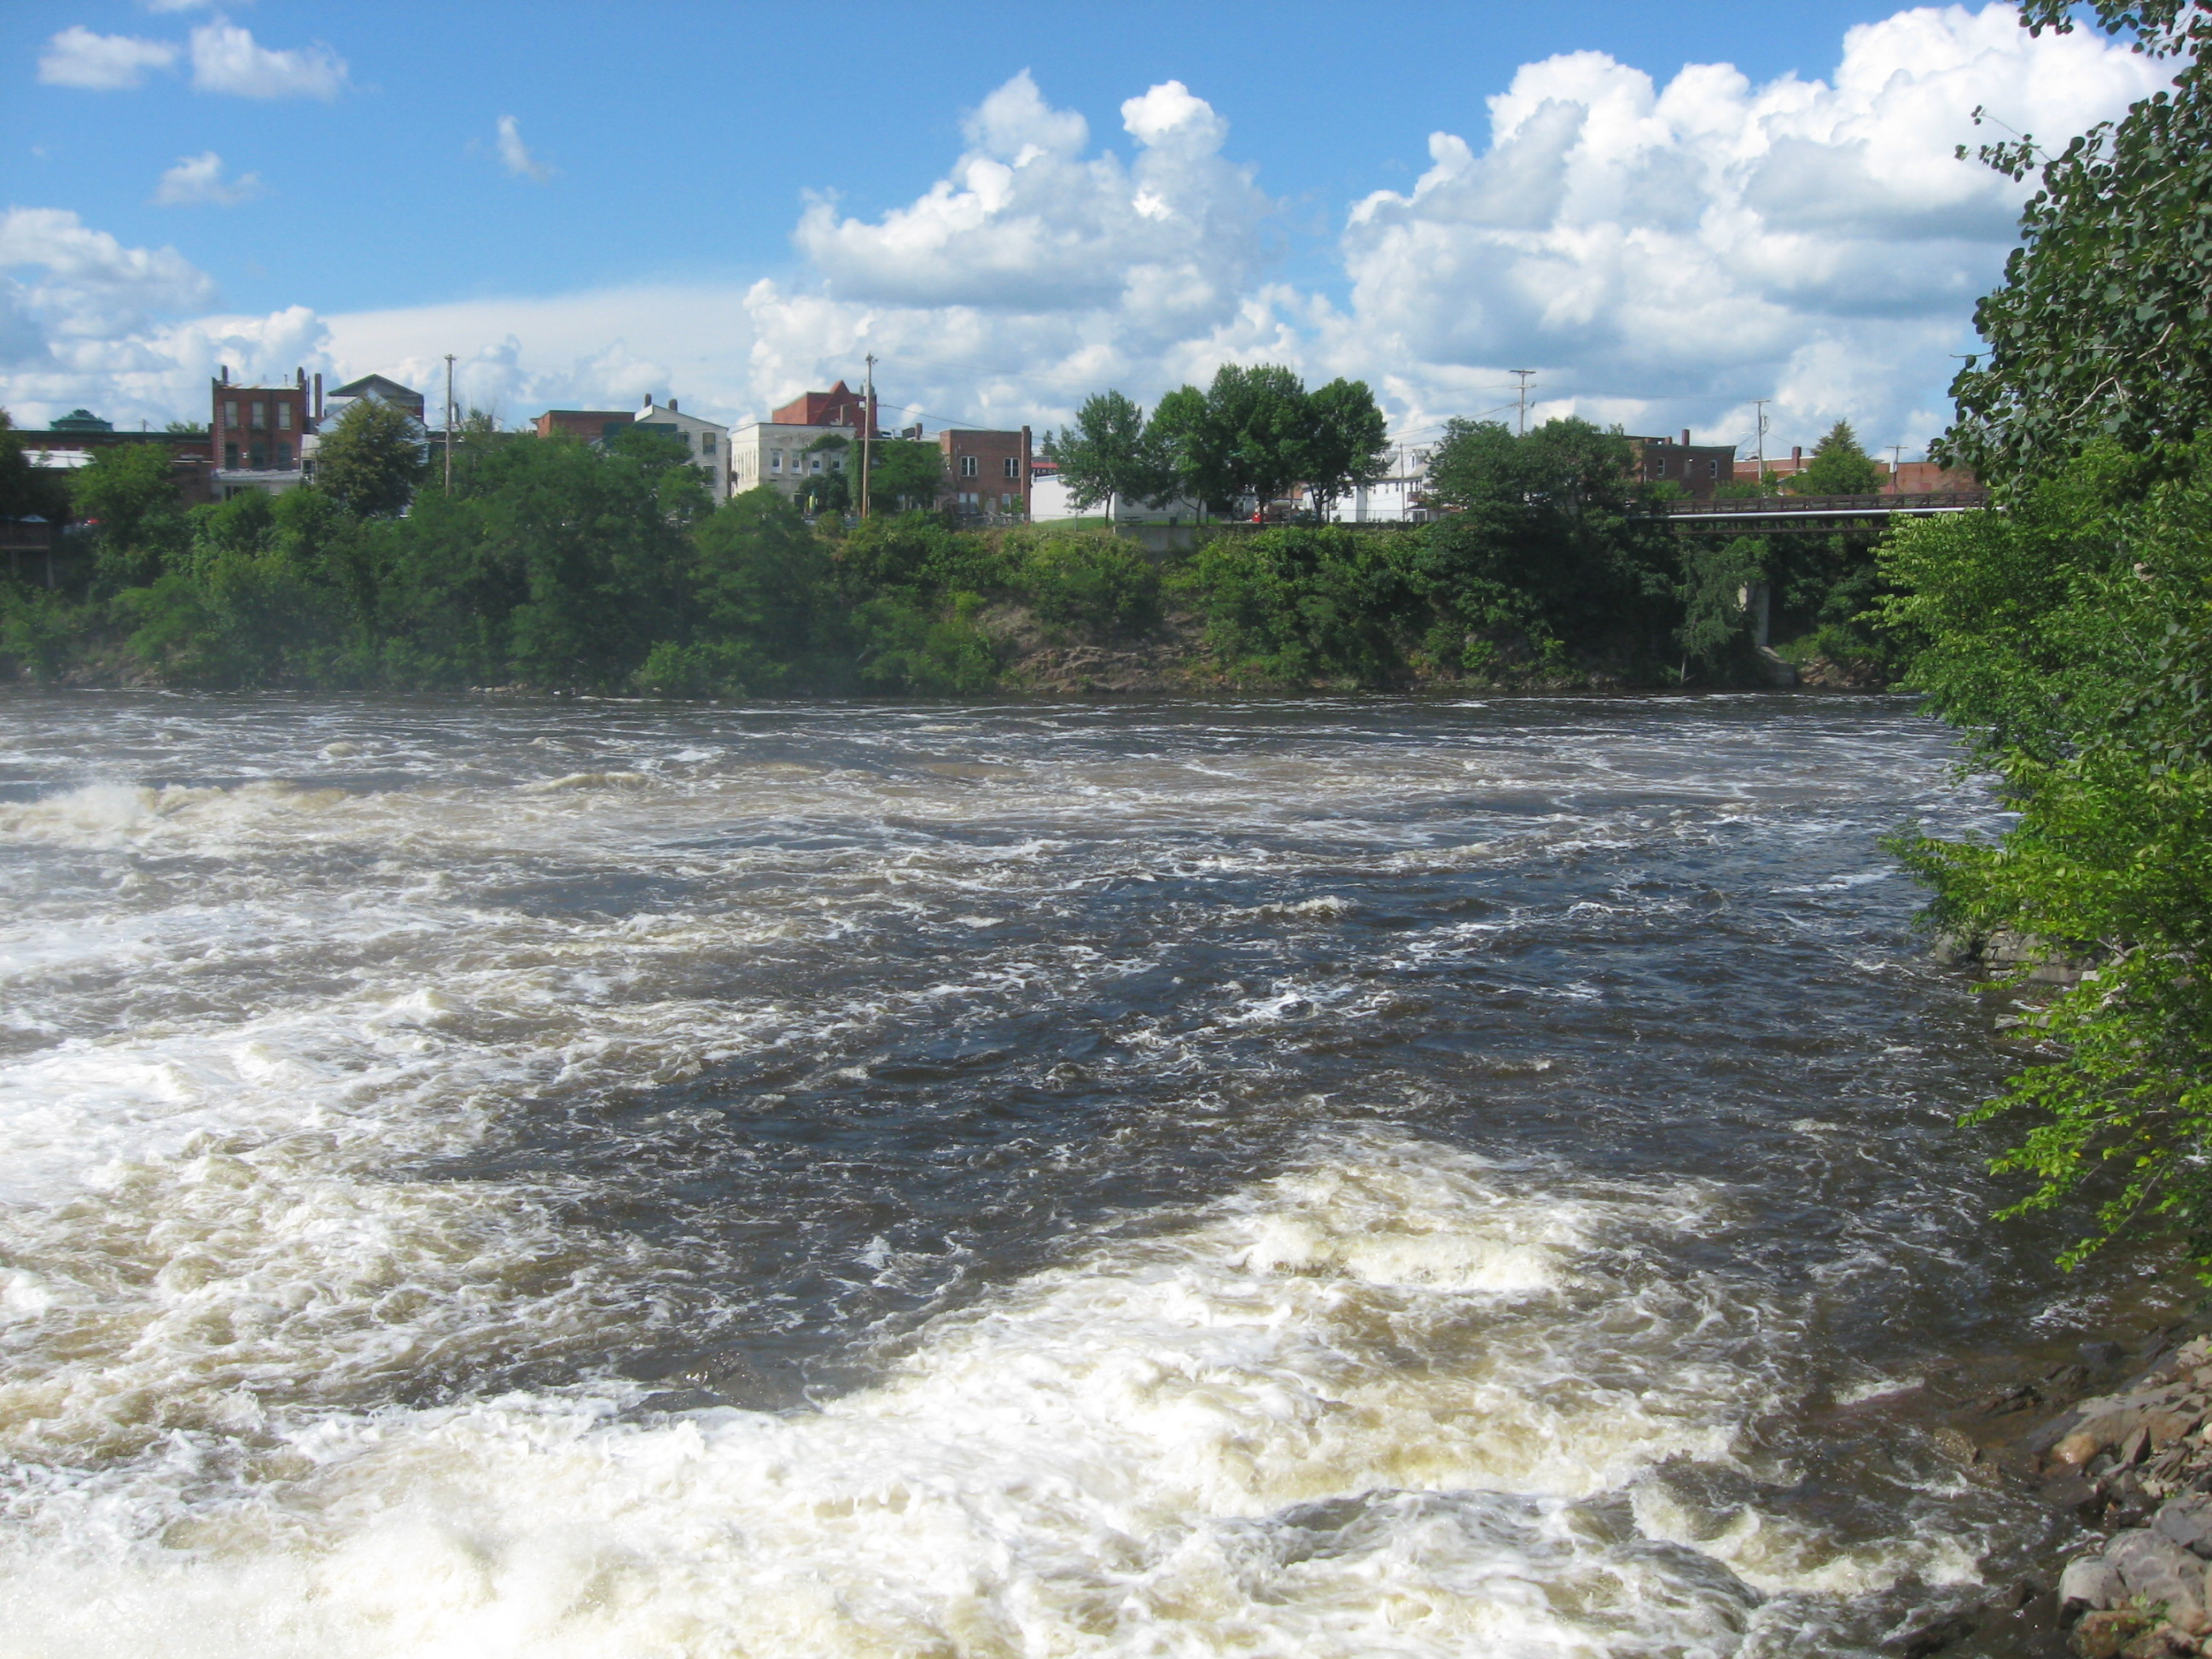 Photograph of the Kennebec River at Skowhegan, ME (SKOM1) looking downstream